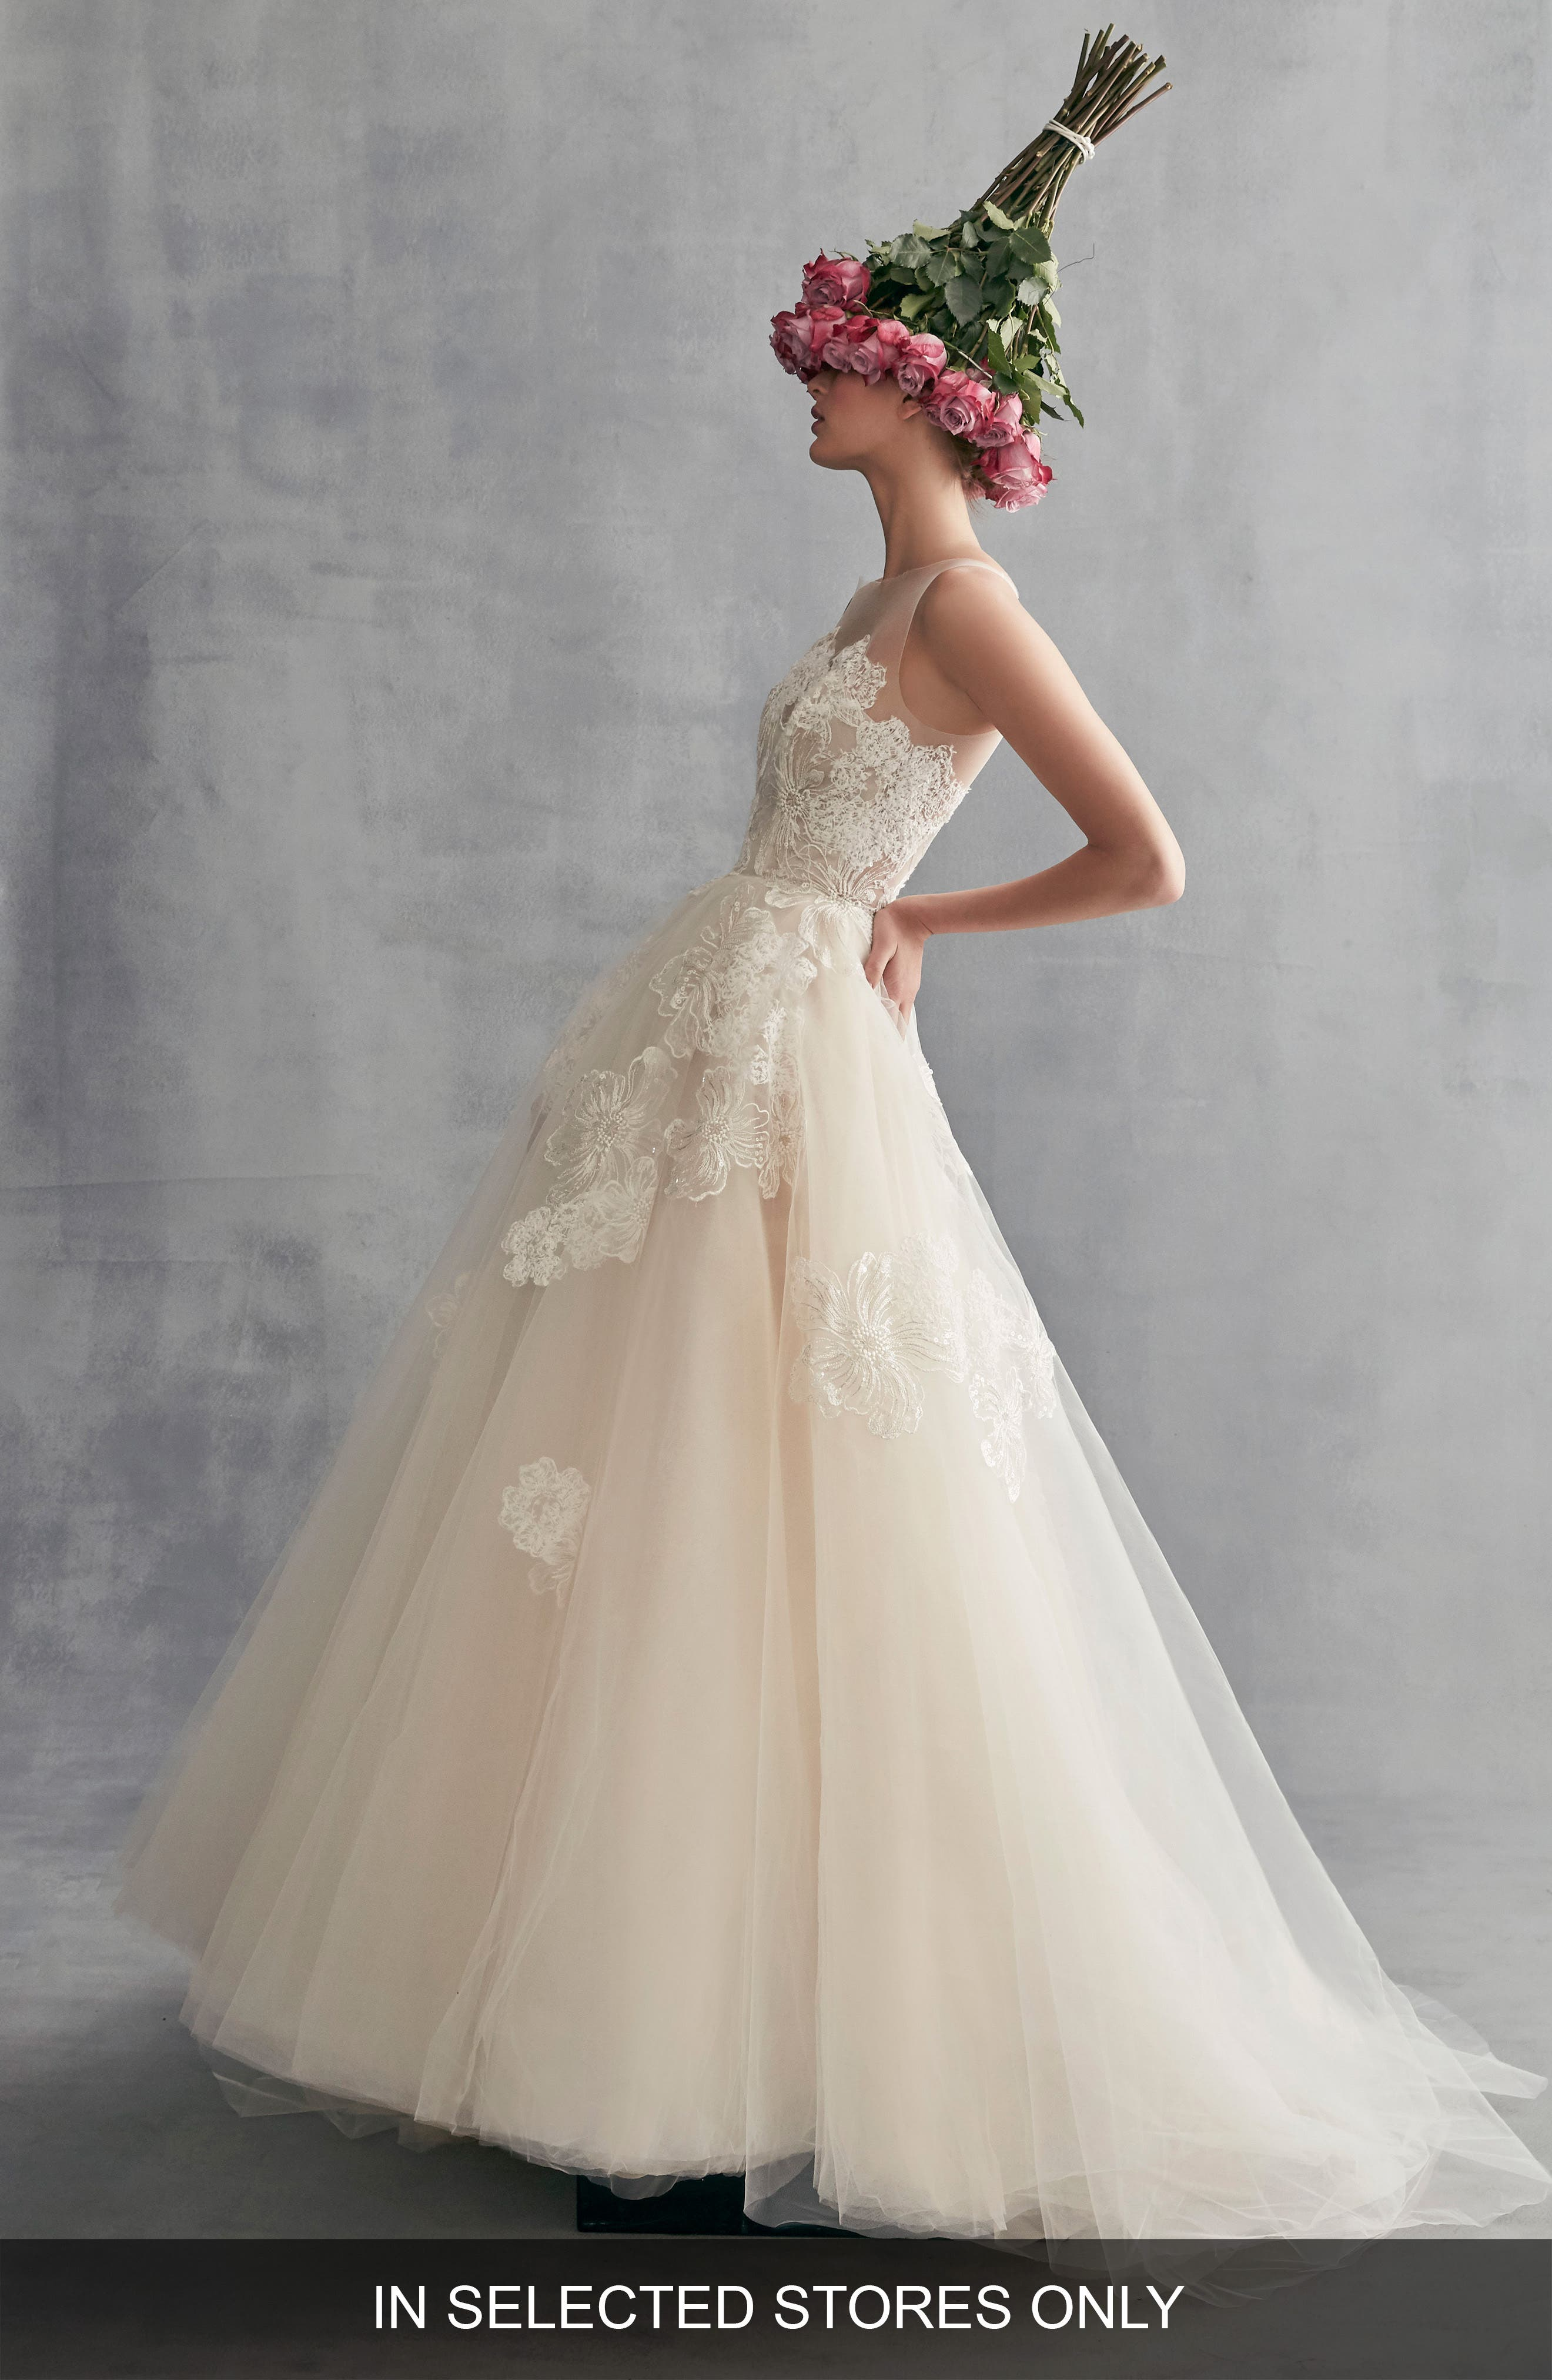 Ines by Ines Di Santo Peony Embroidered Tulle Ballgown